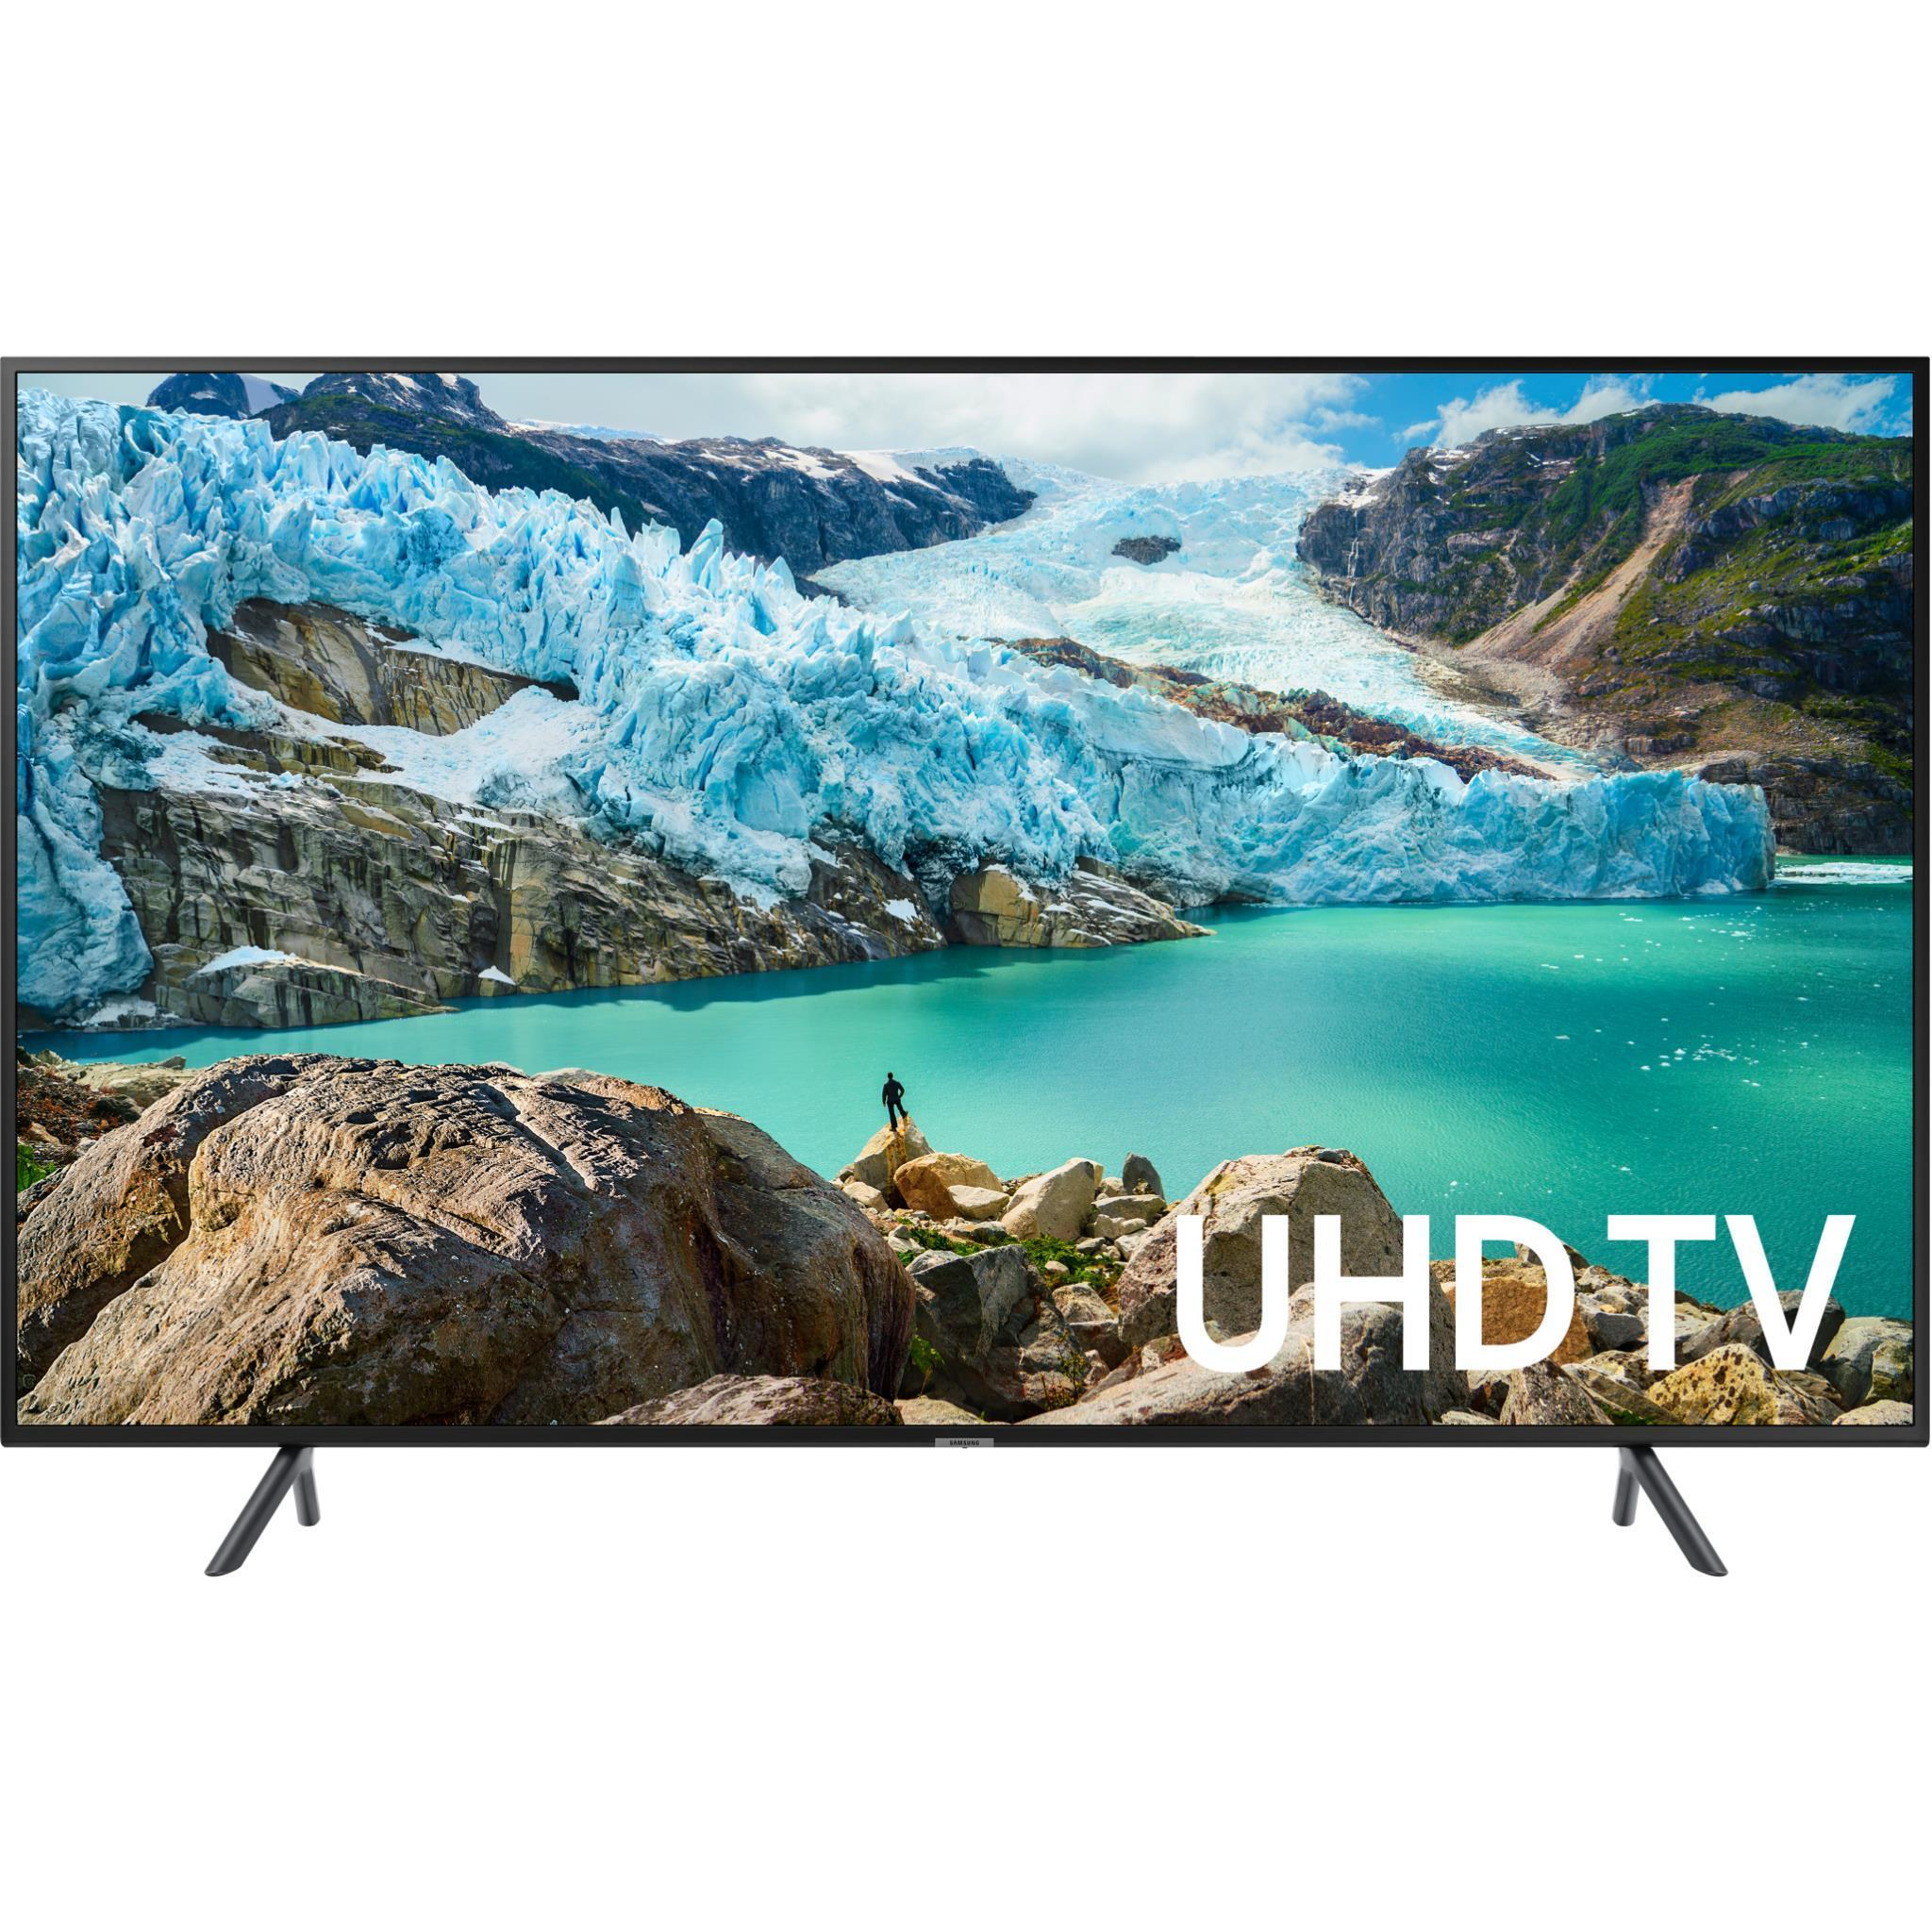 Samsung Series 7 RU7100 50″ 4K UHD LED TV